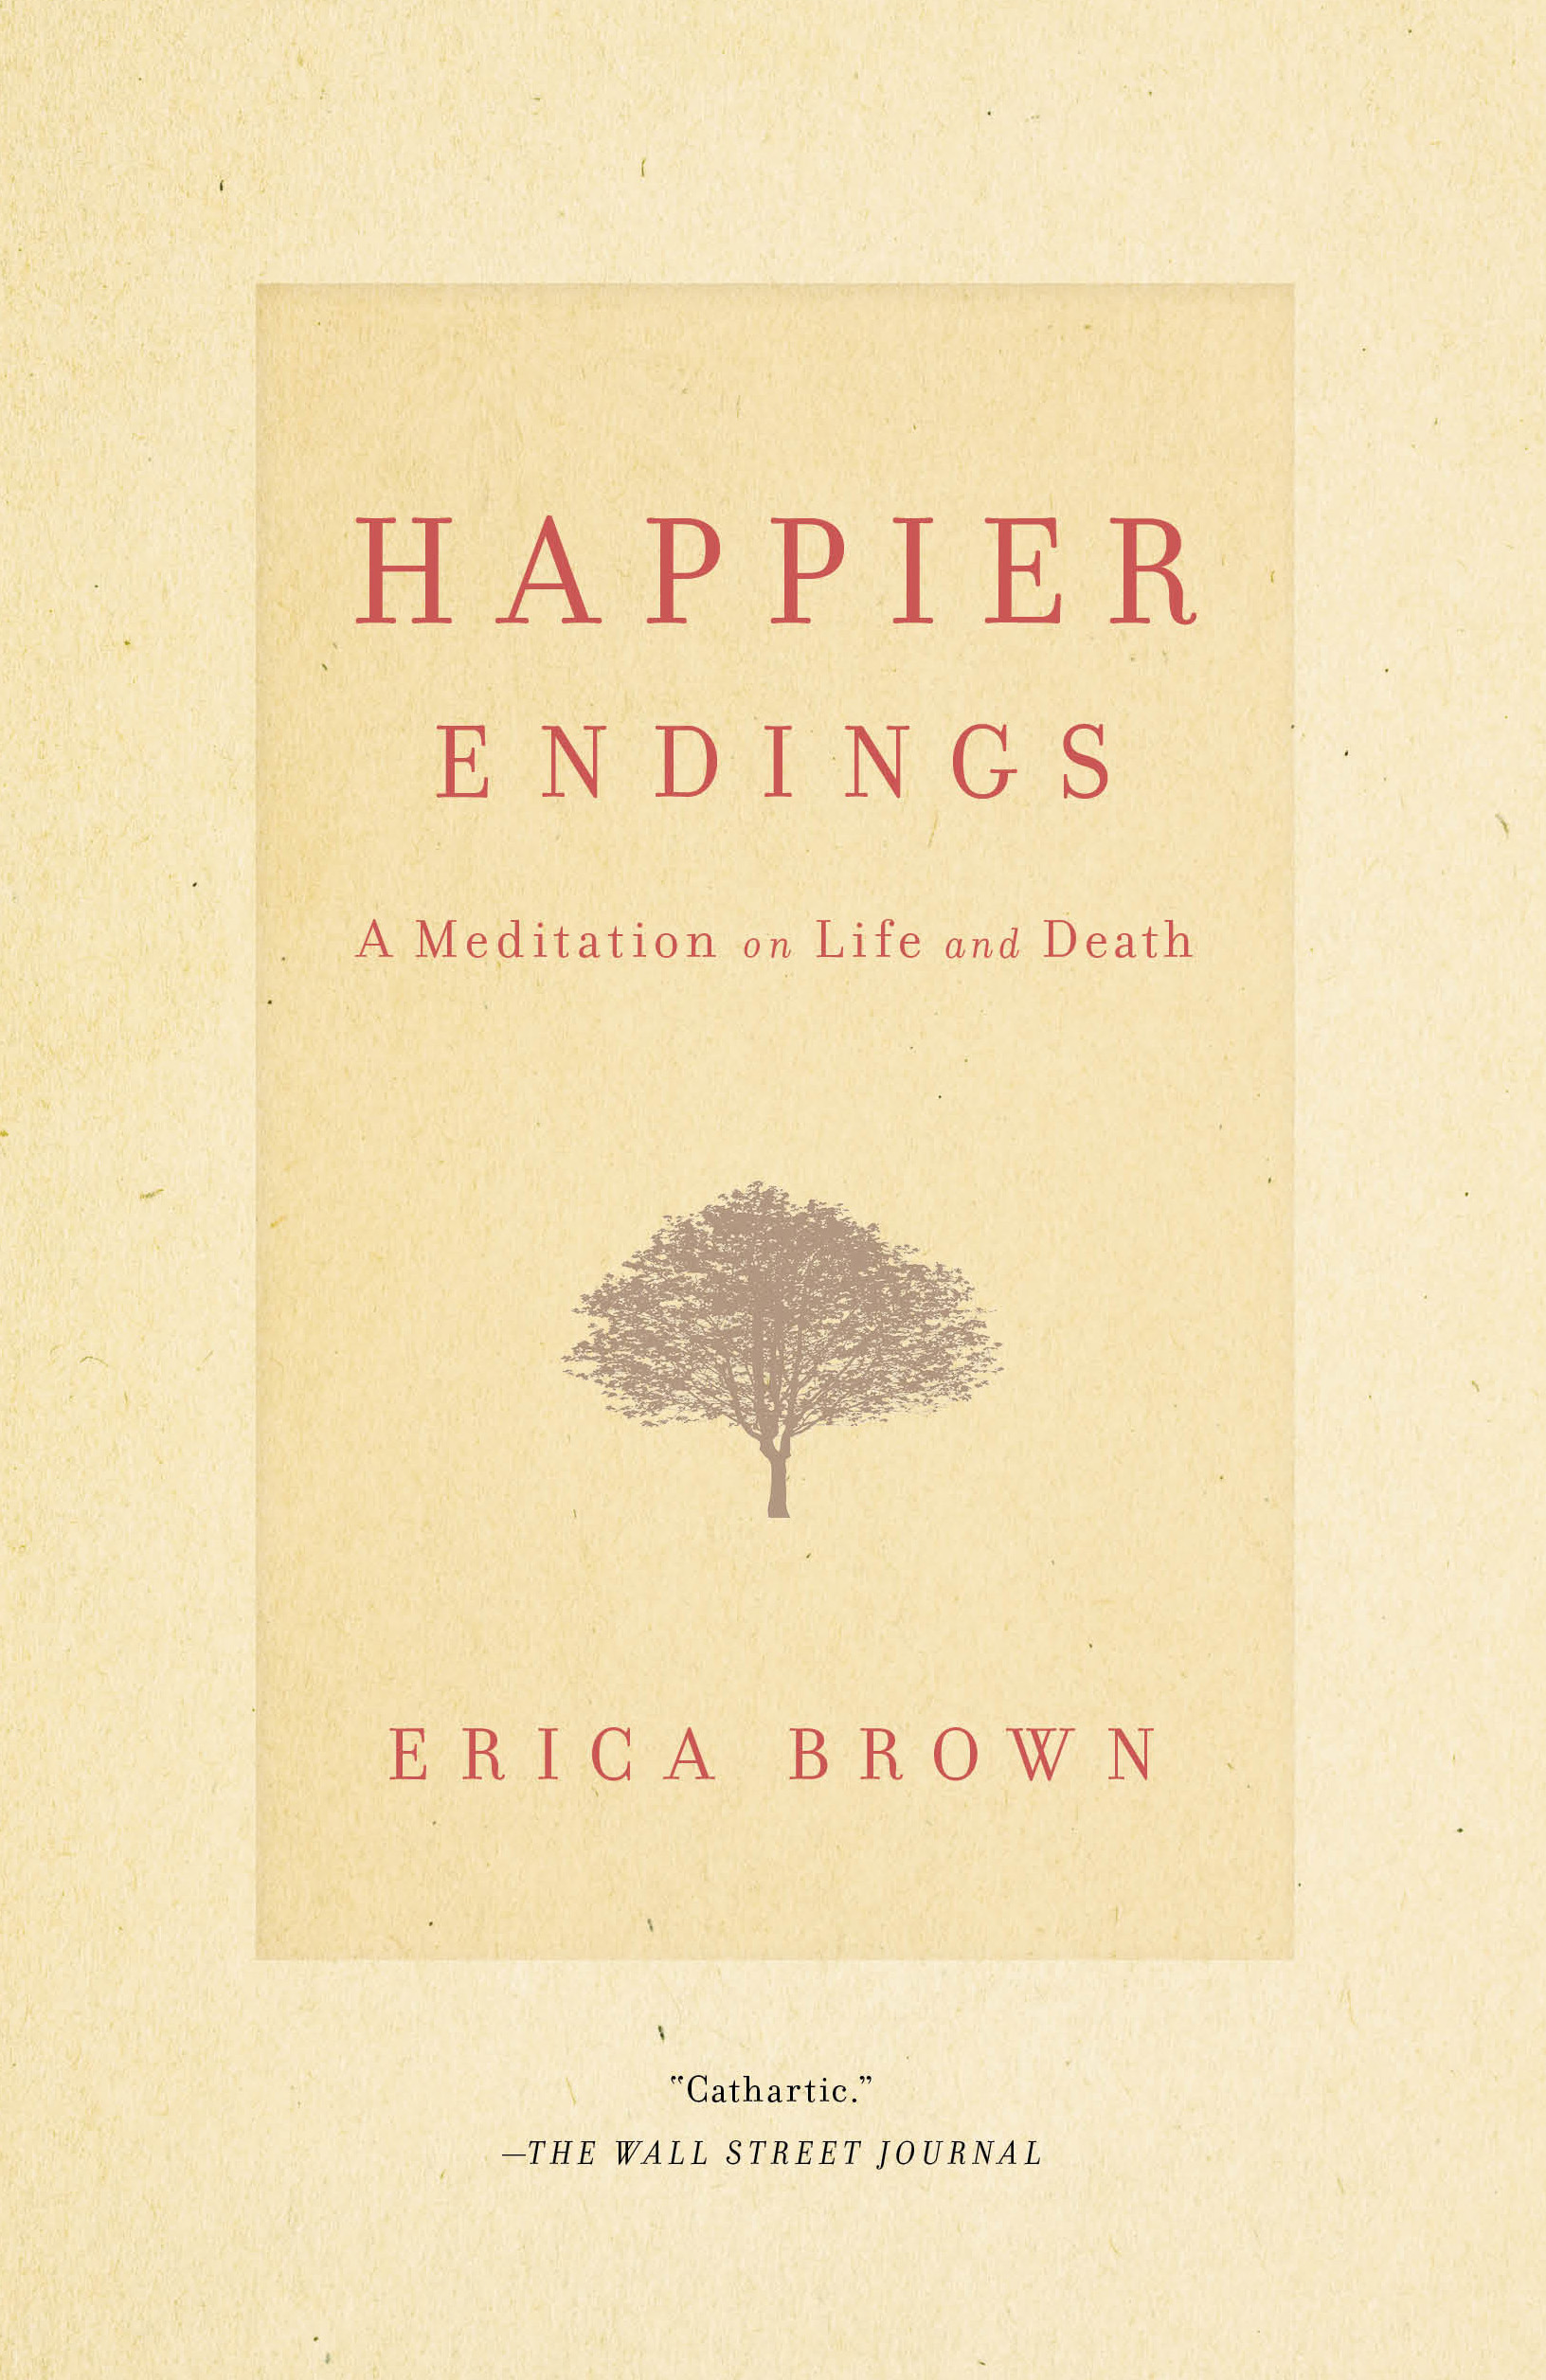 Happier-endings-9781451649239_hr